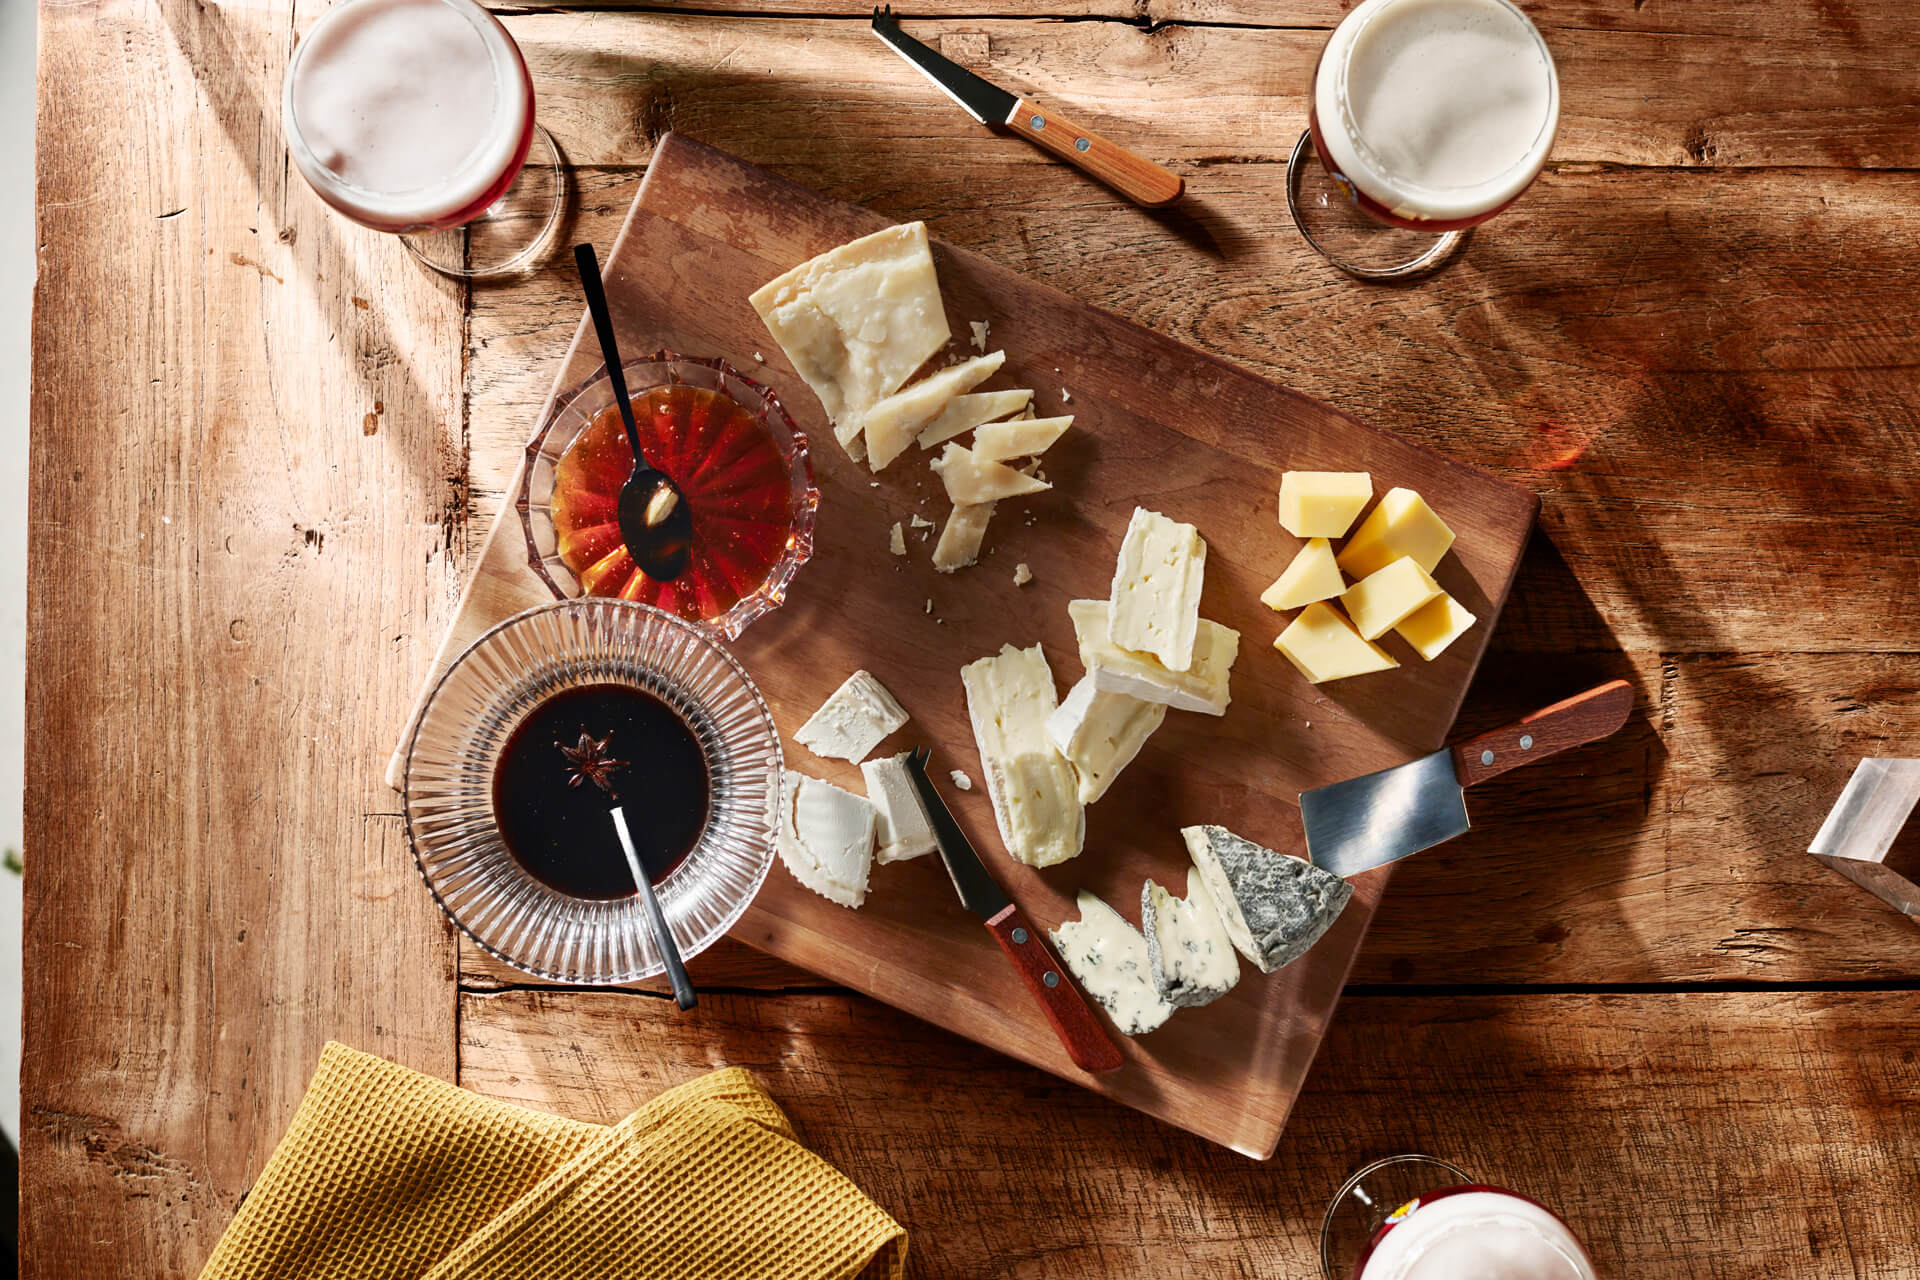 Leffe - food photography by Erik de Koning - mixed cheese chopping board